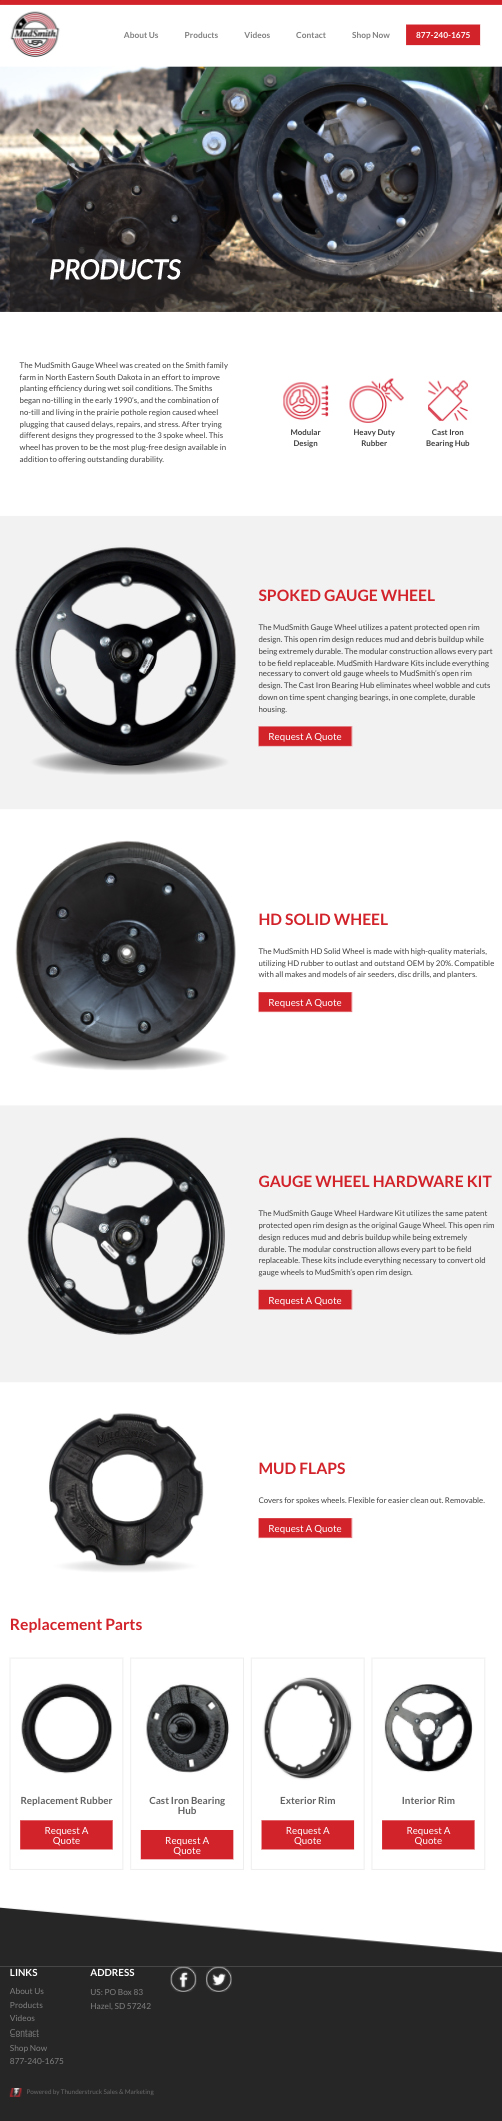 Our Product MudSmith Gauge Wheels iPad